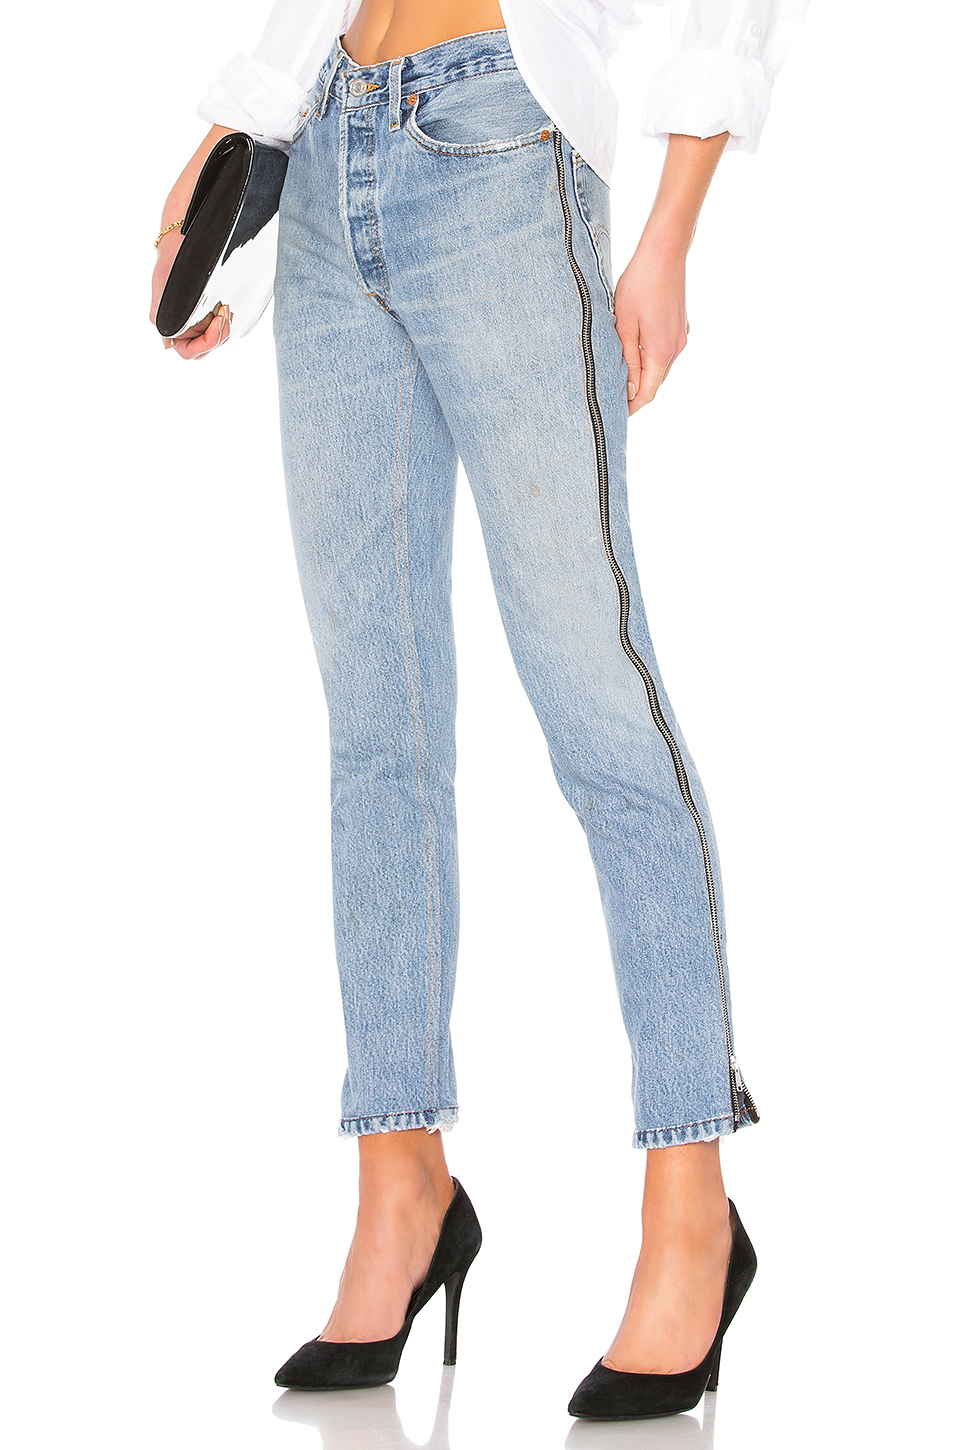 1629458e8f0 Buy Original RE/DONE LEVI'S High Rise Ankle Crop Zip at Indonesia ...